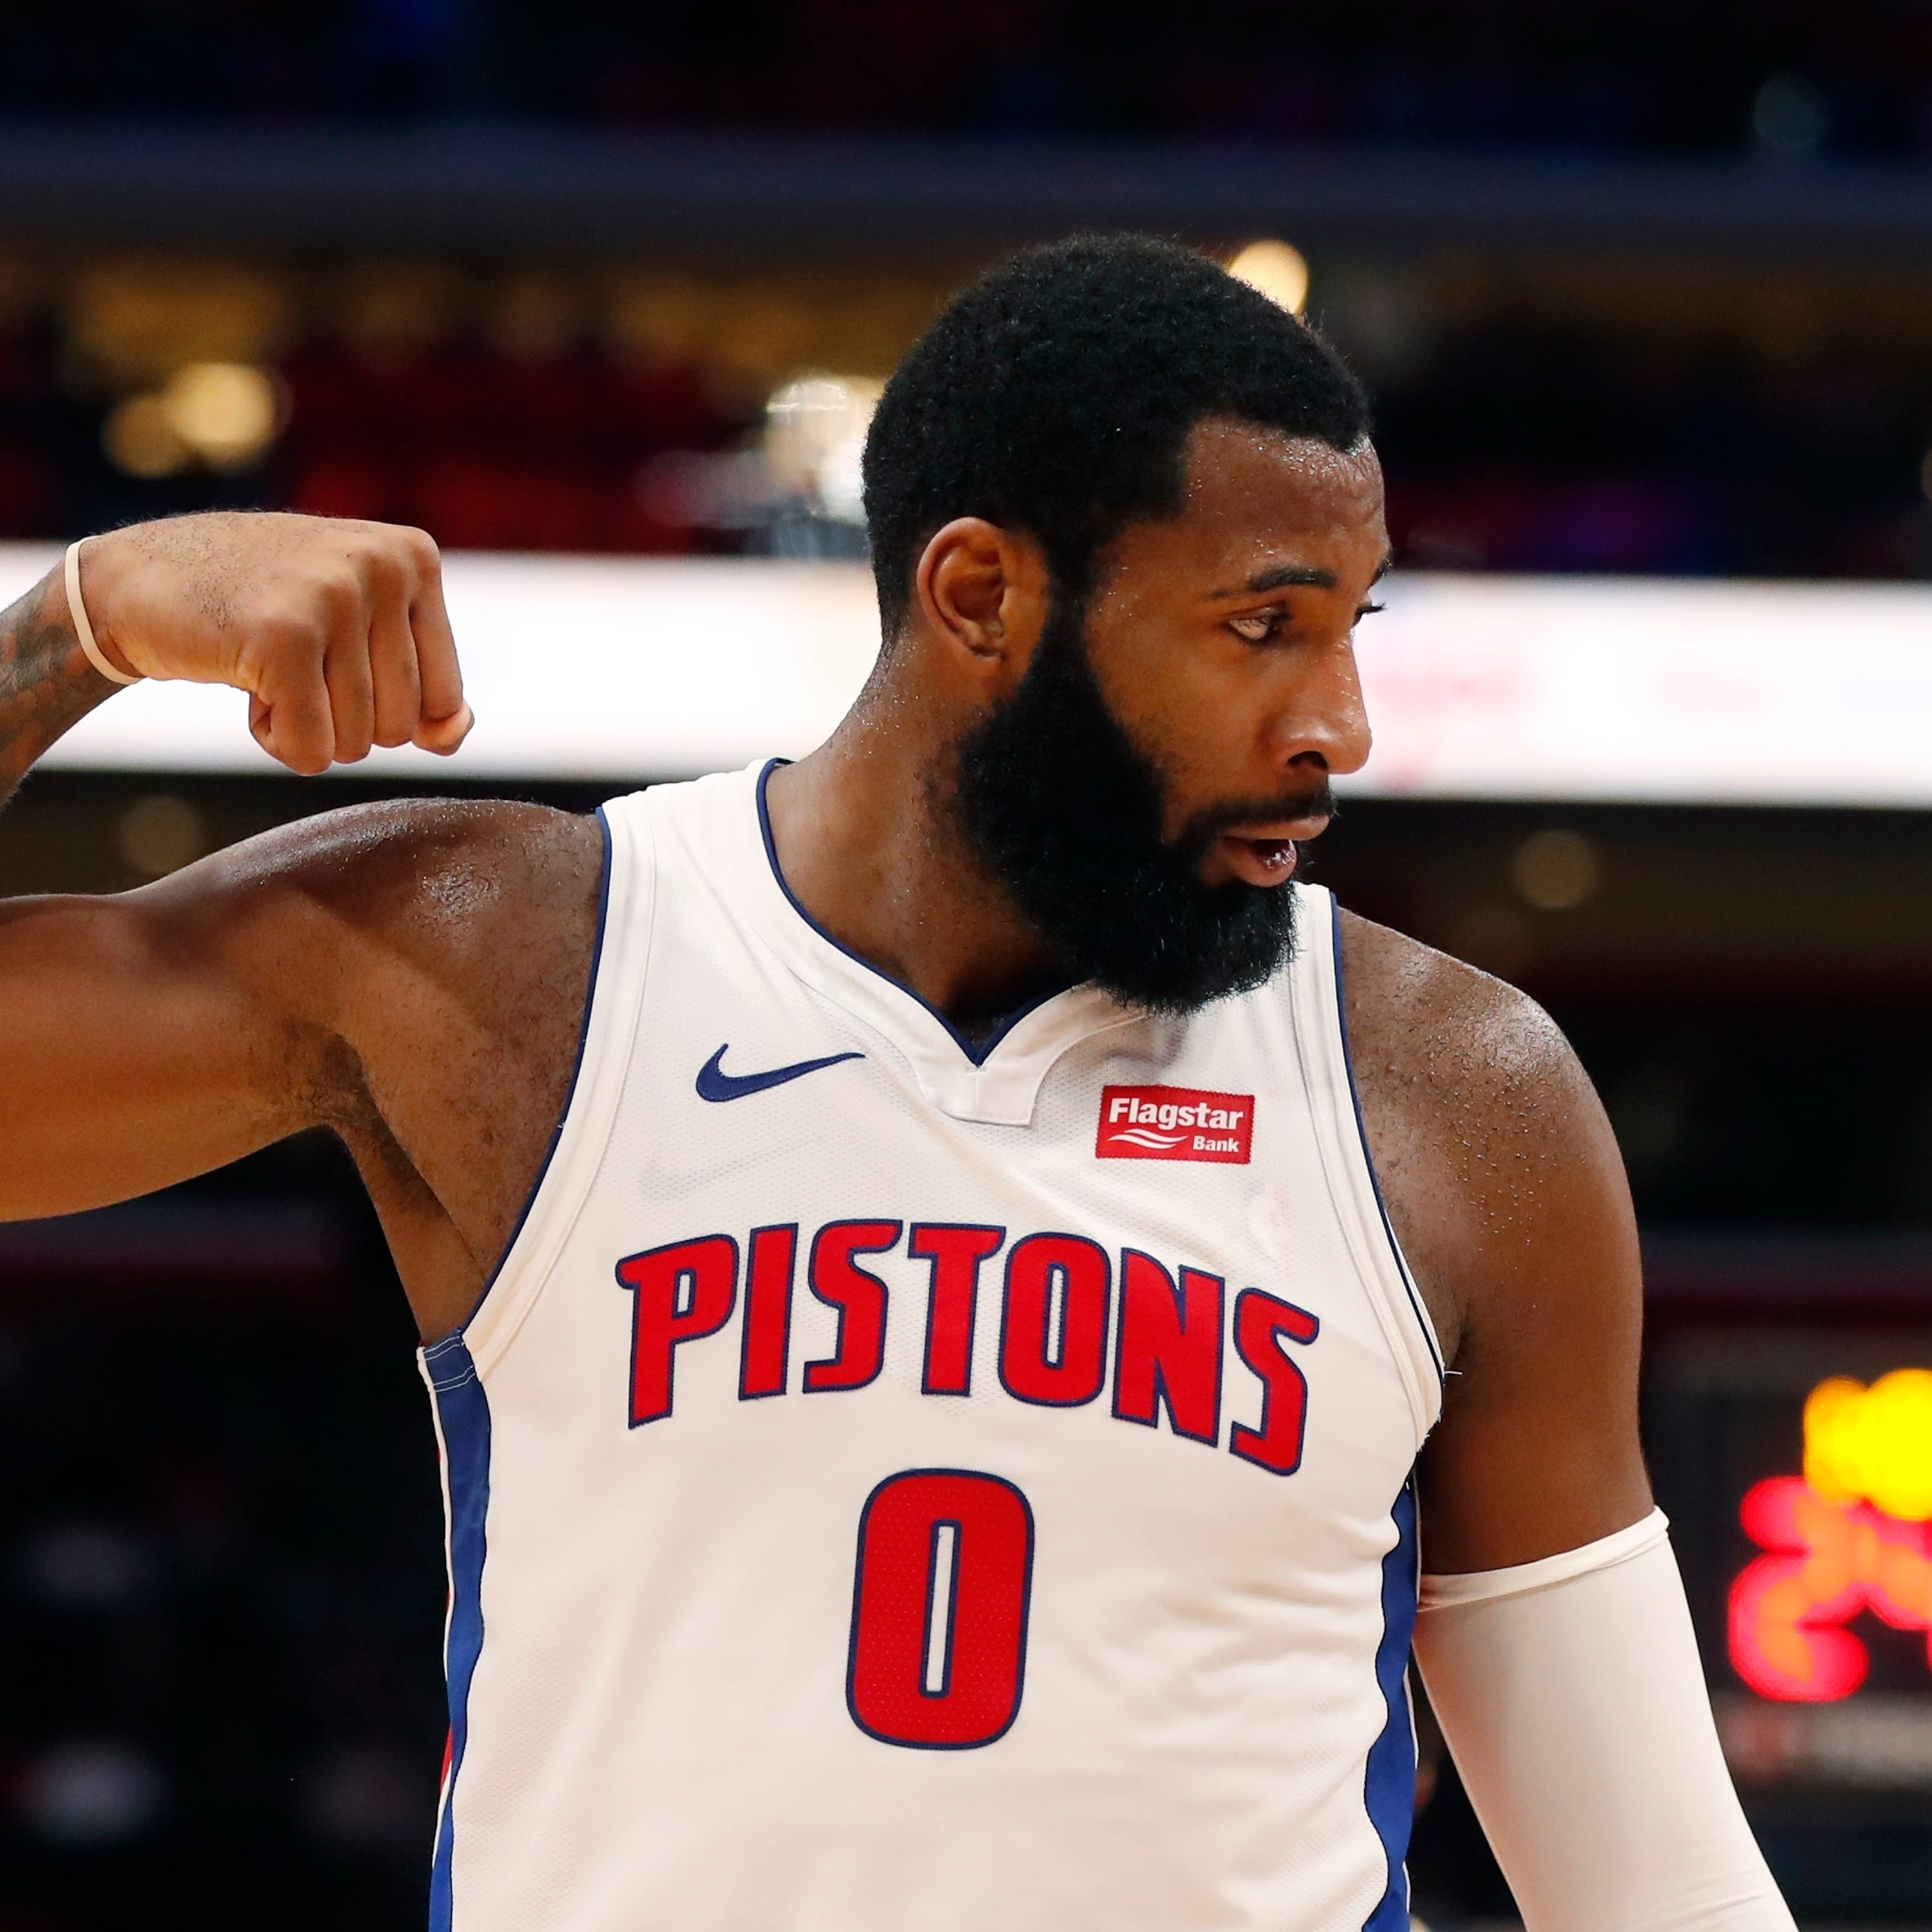 Detroit Pistons get off to hot start, cruise to win vs. Cavaliers